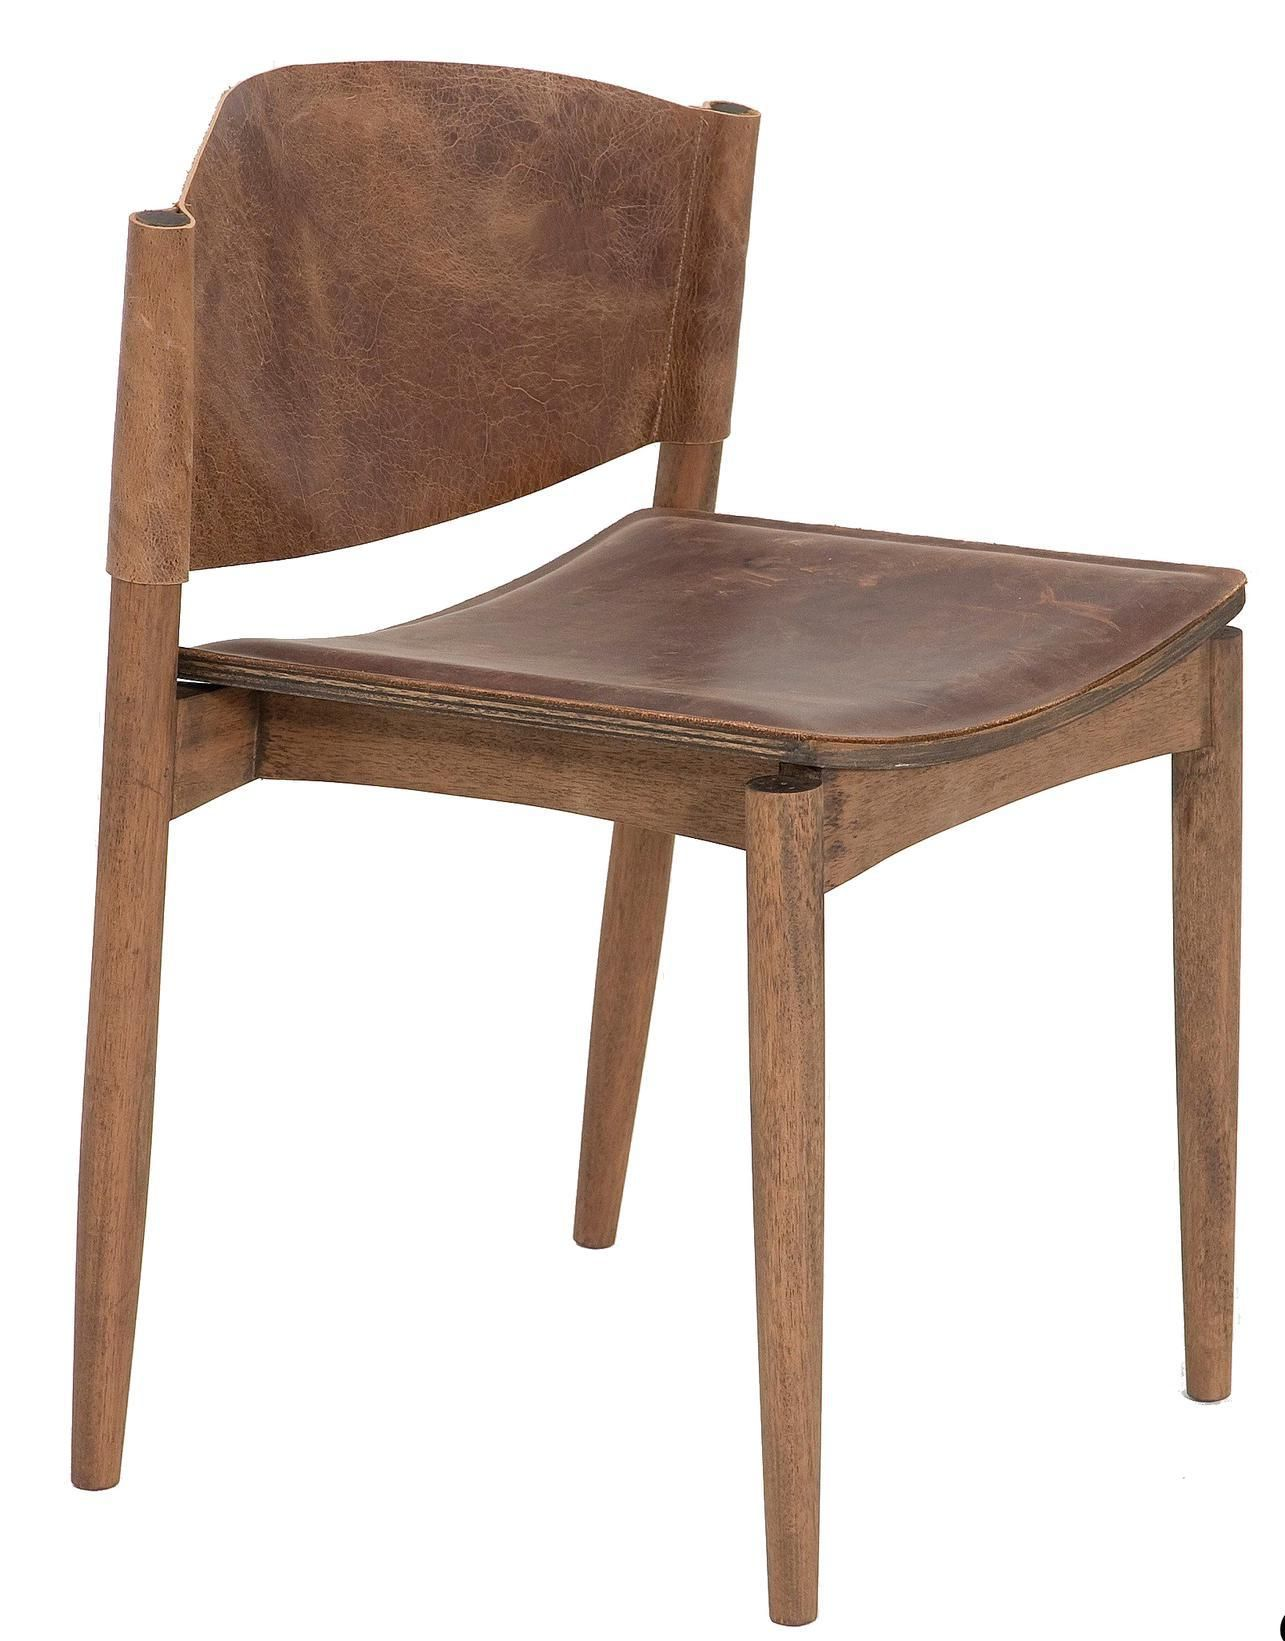 Kelly Christian Designs Pampulha Side Chair By Rejane